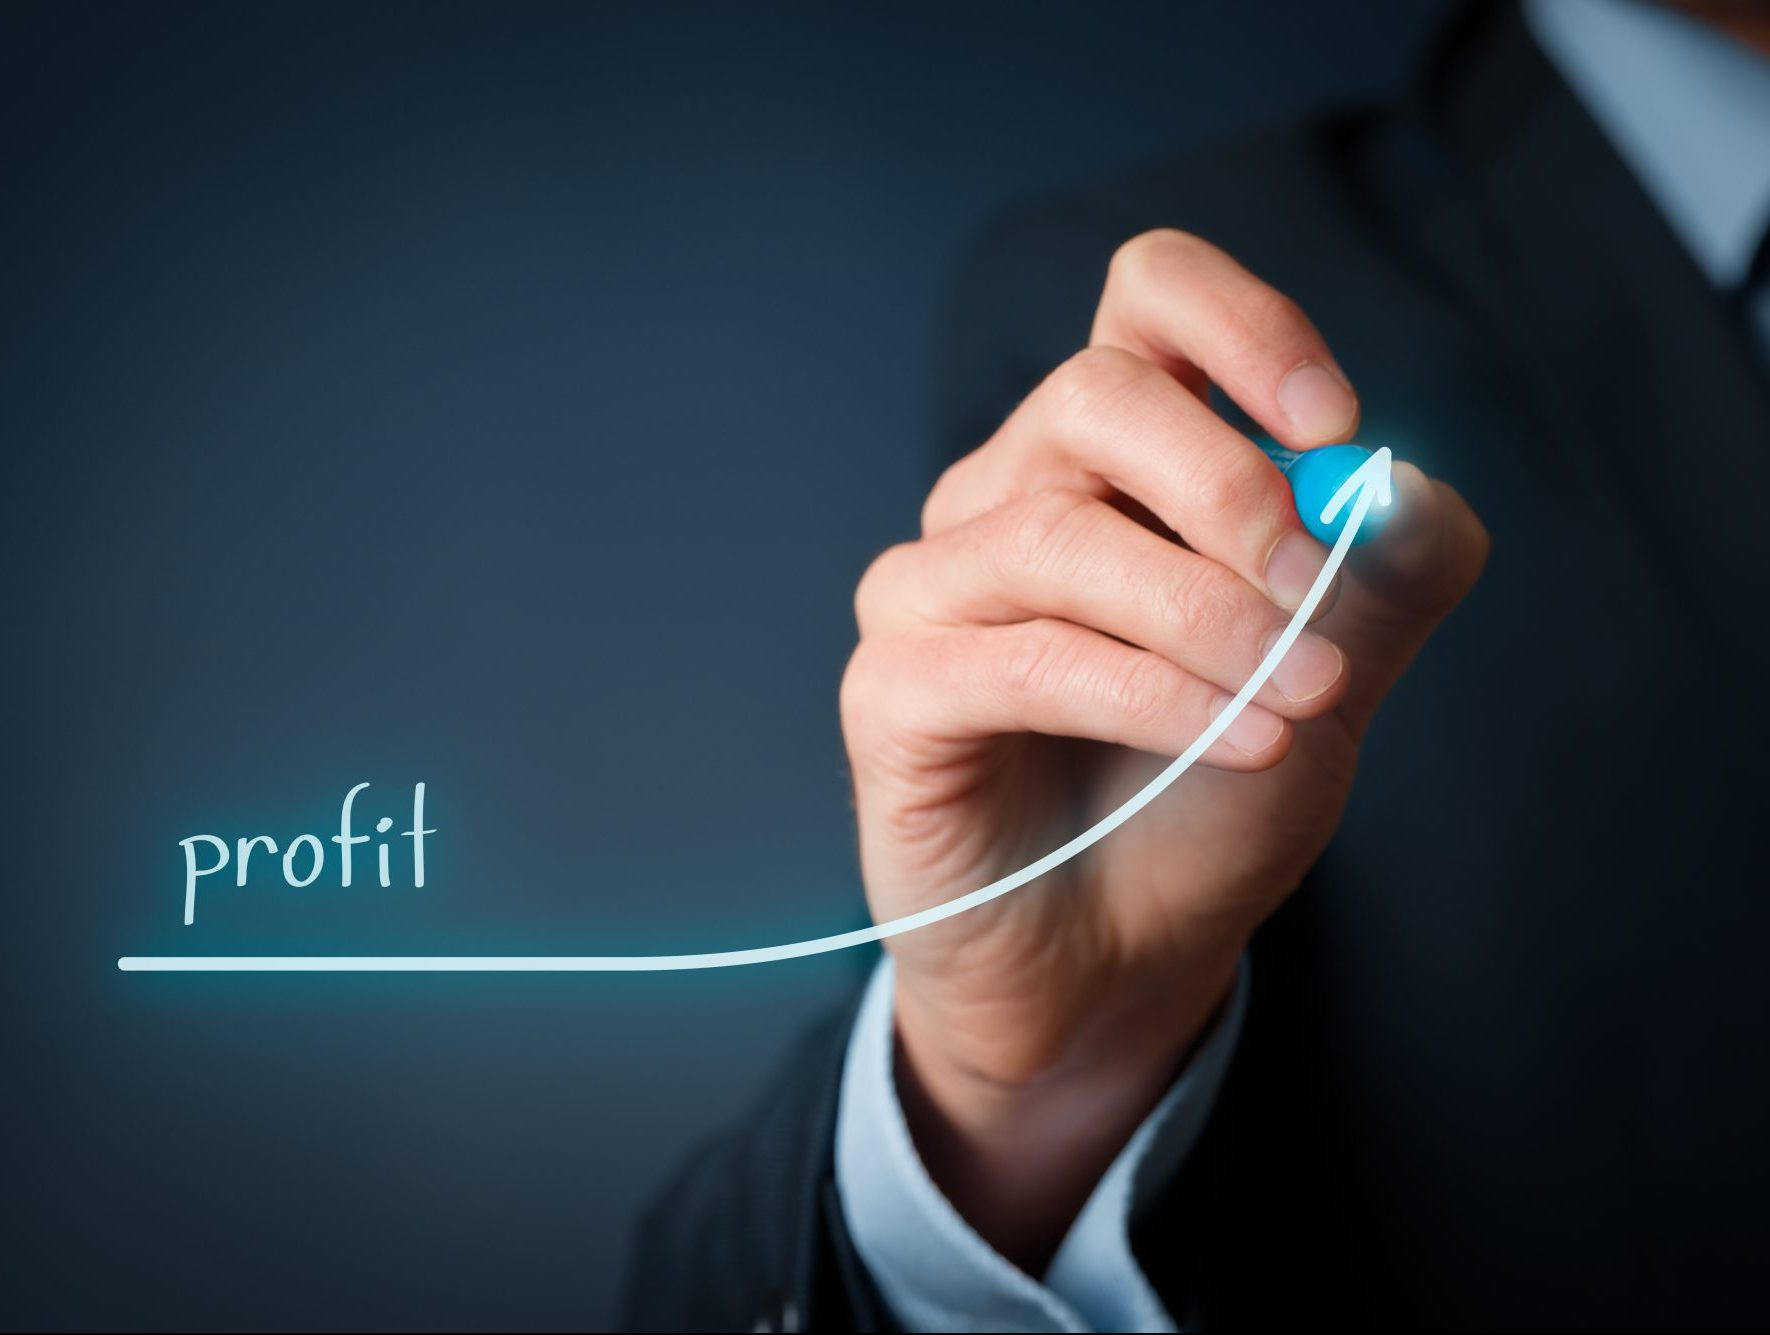 Increase profit concept. Businessman plan (predict) profit growth represented by graph.